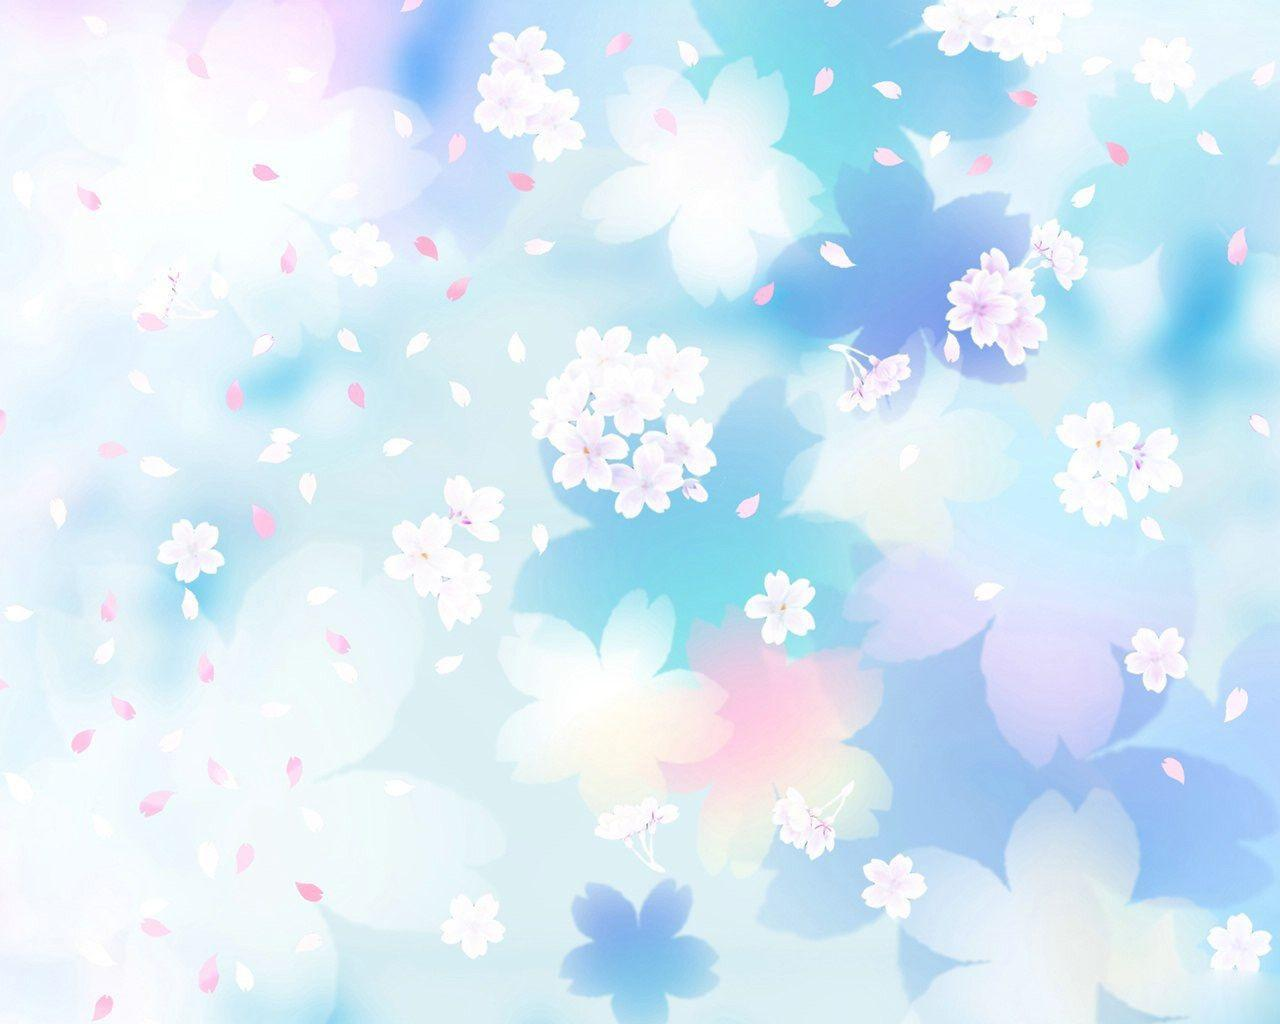 Pretty Blue Backgrounds